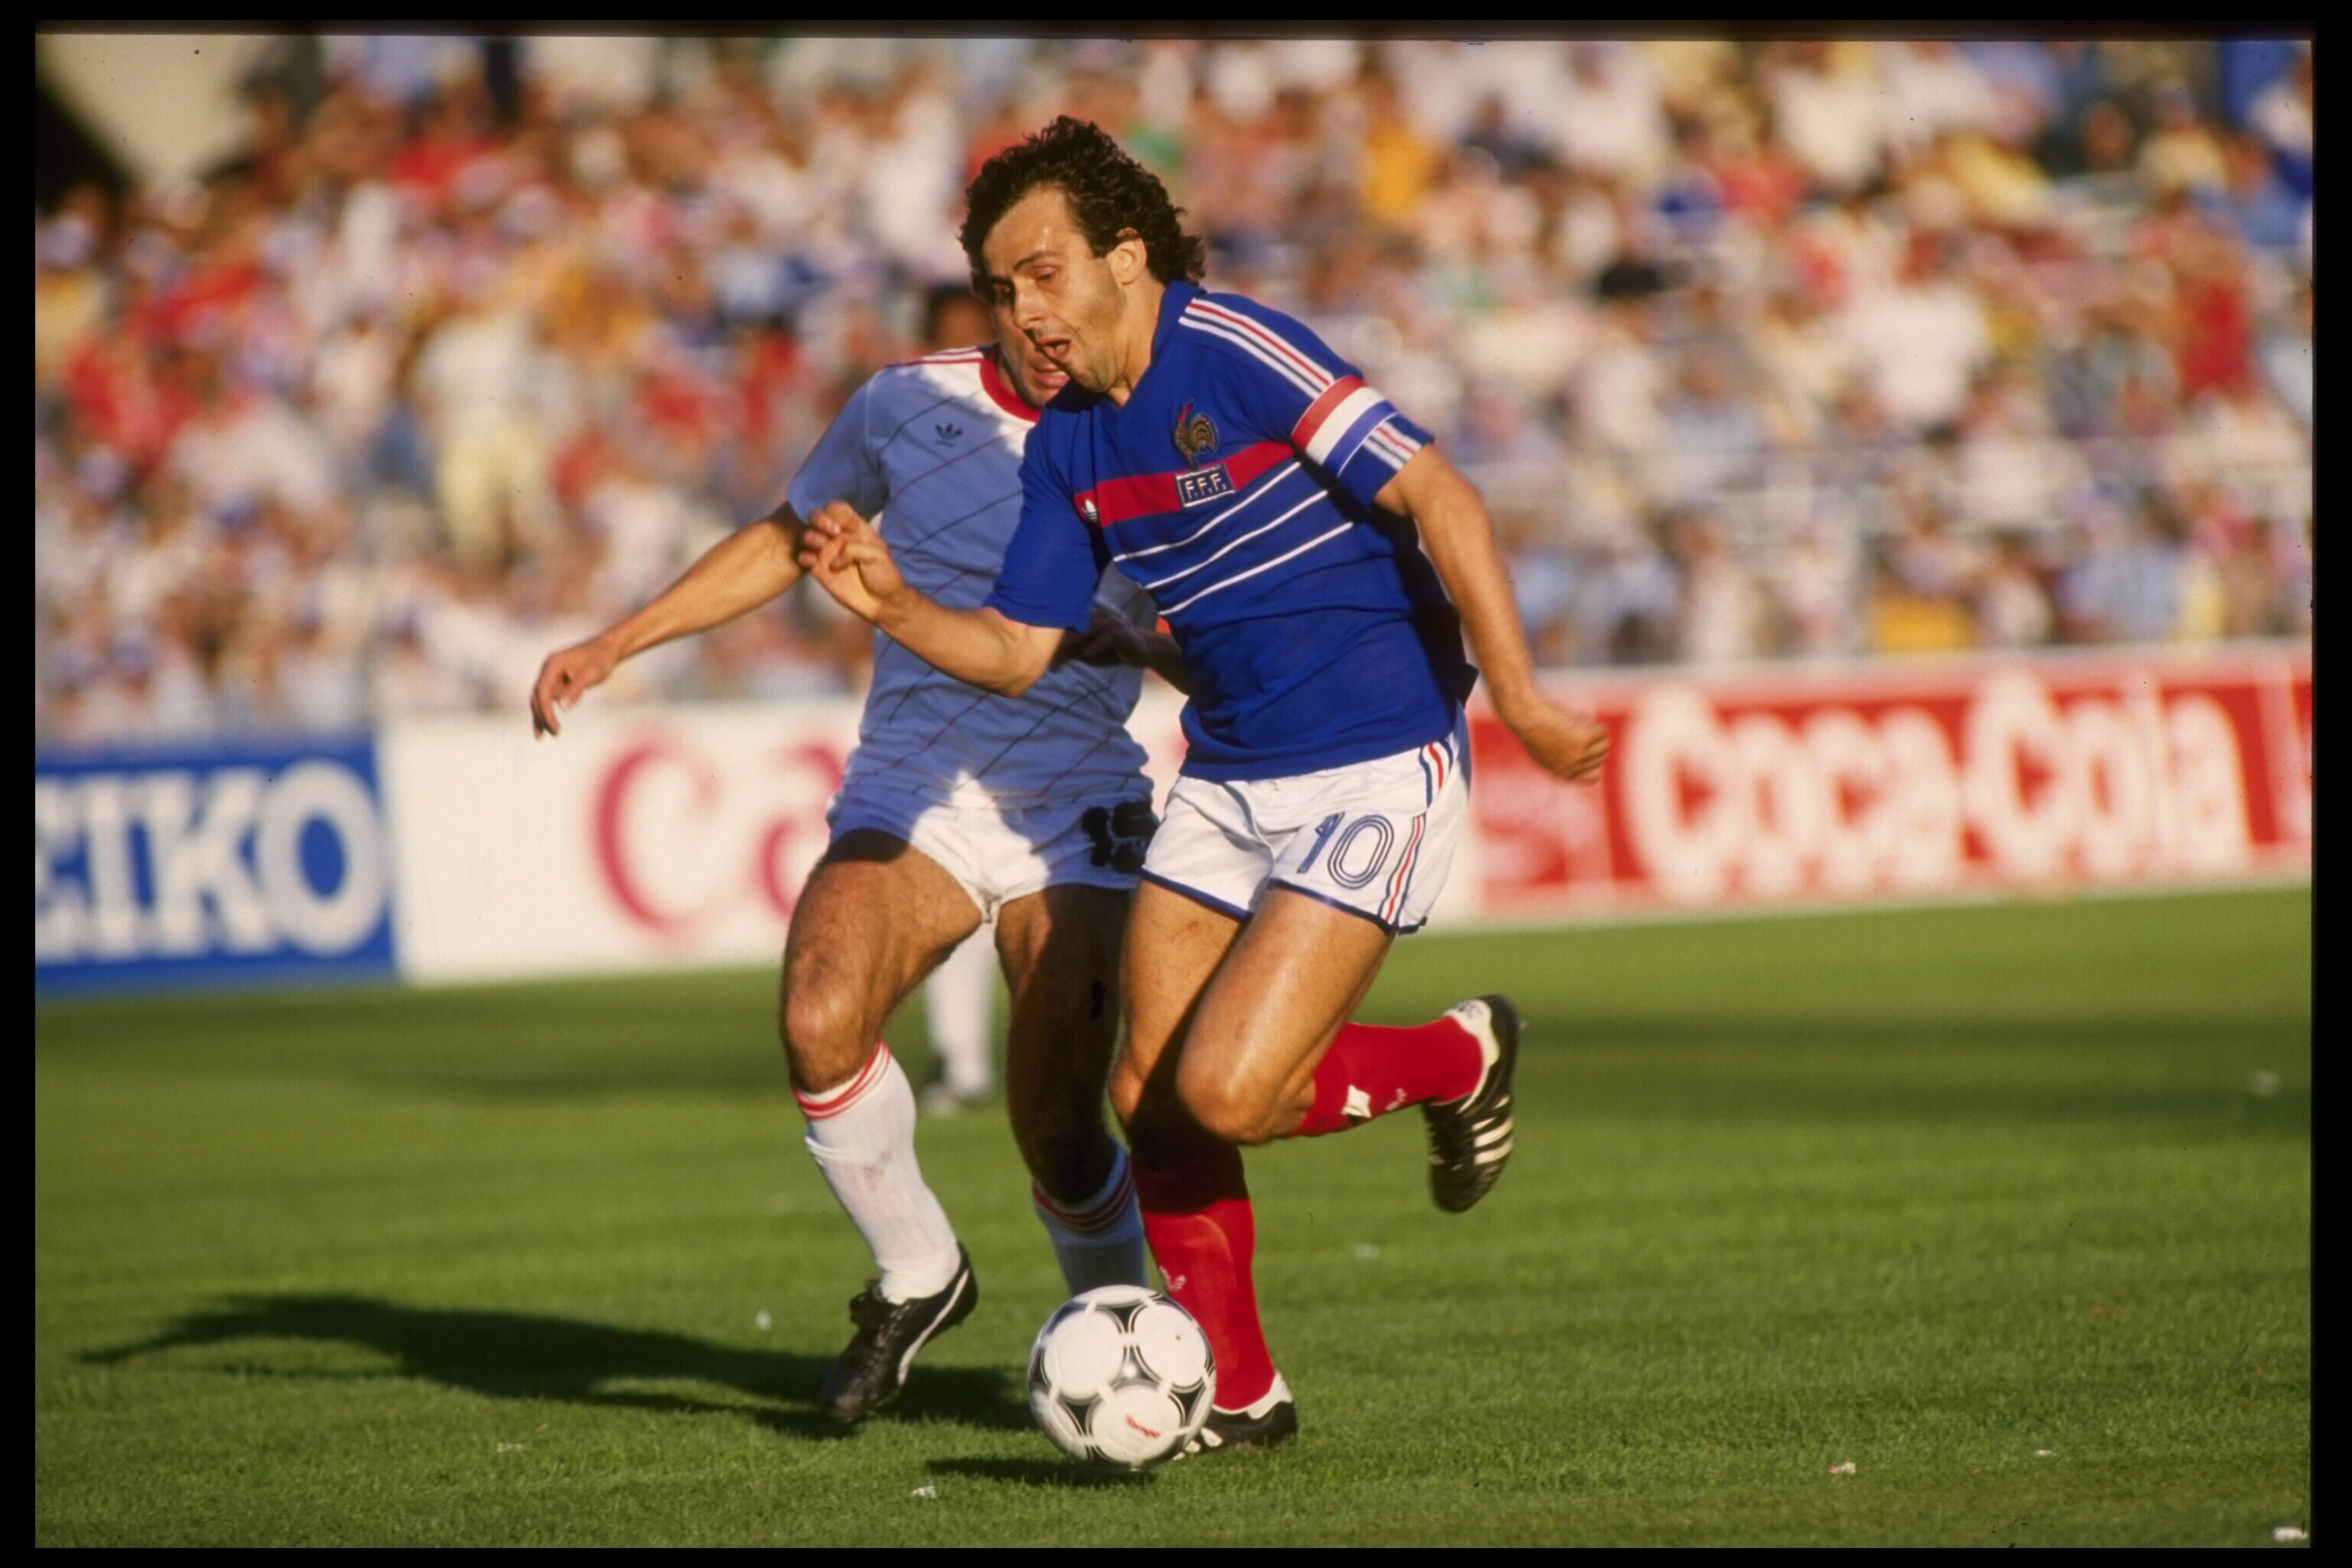 One of Europe's finest ever footballers, Michel Platini